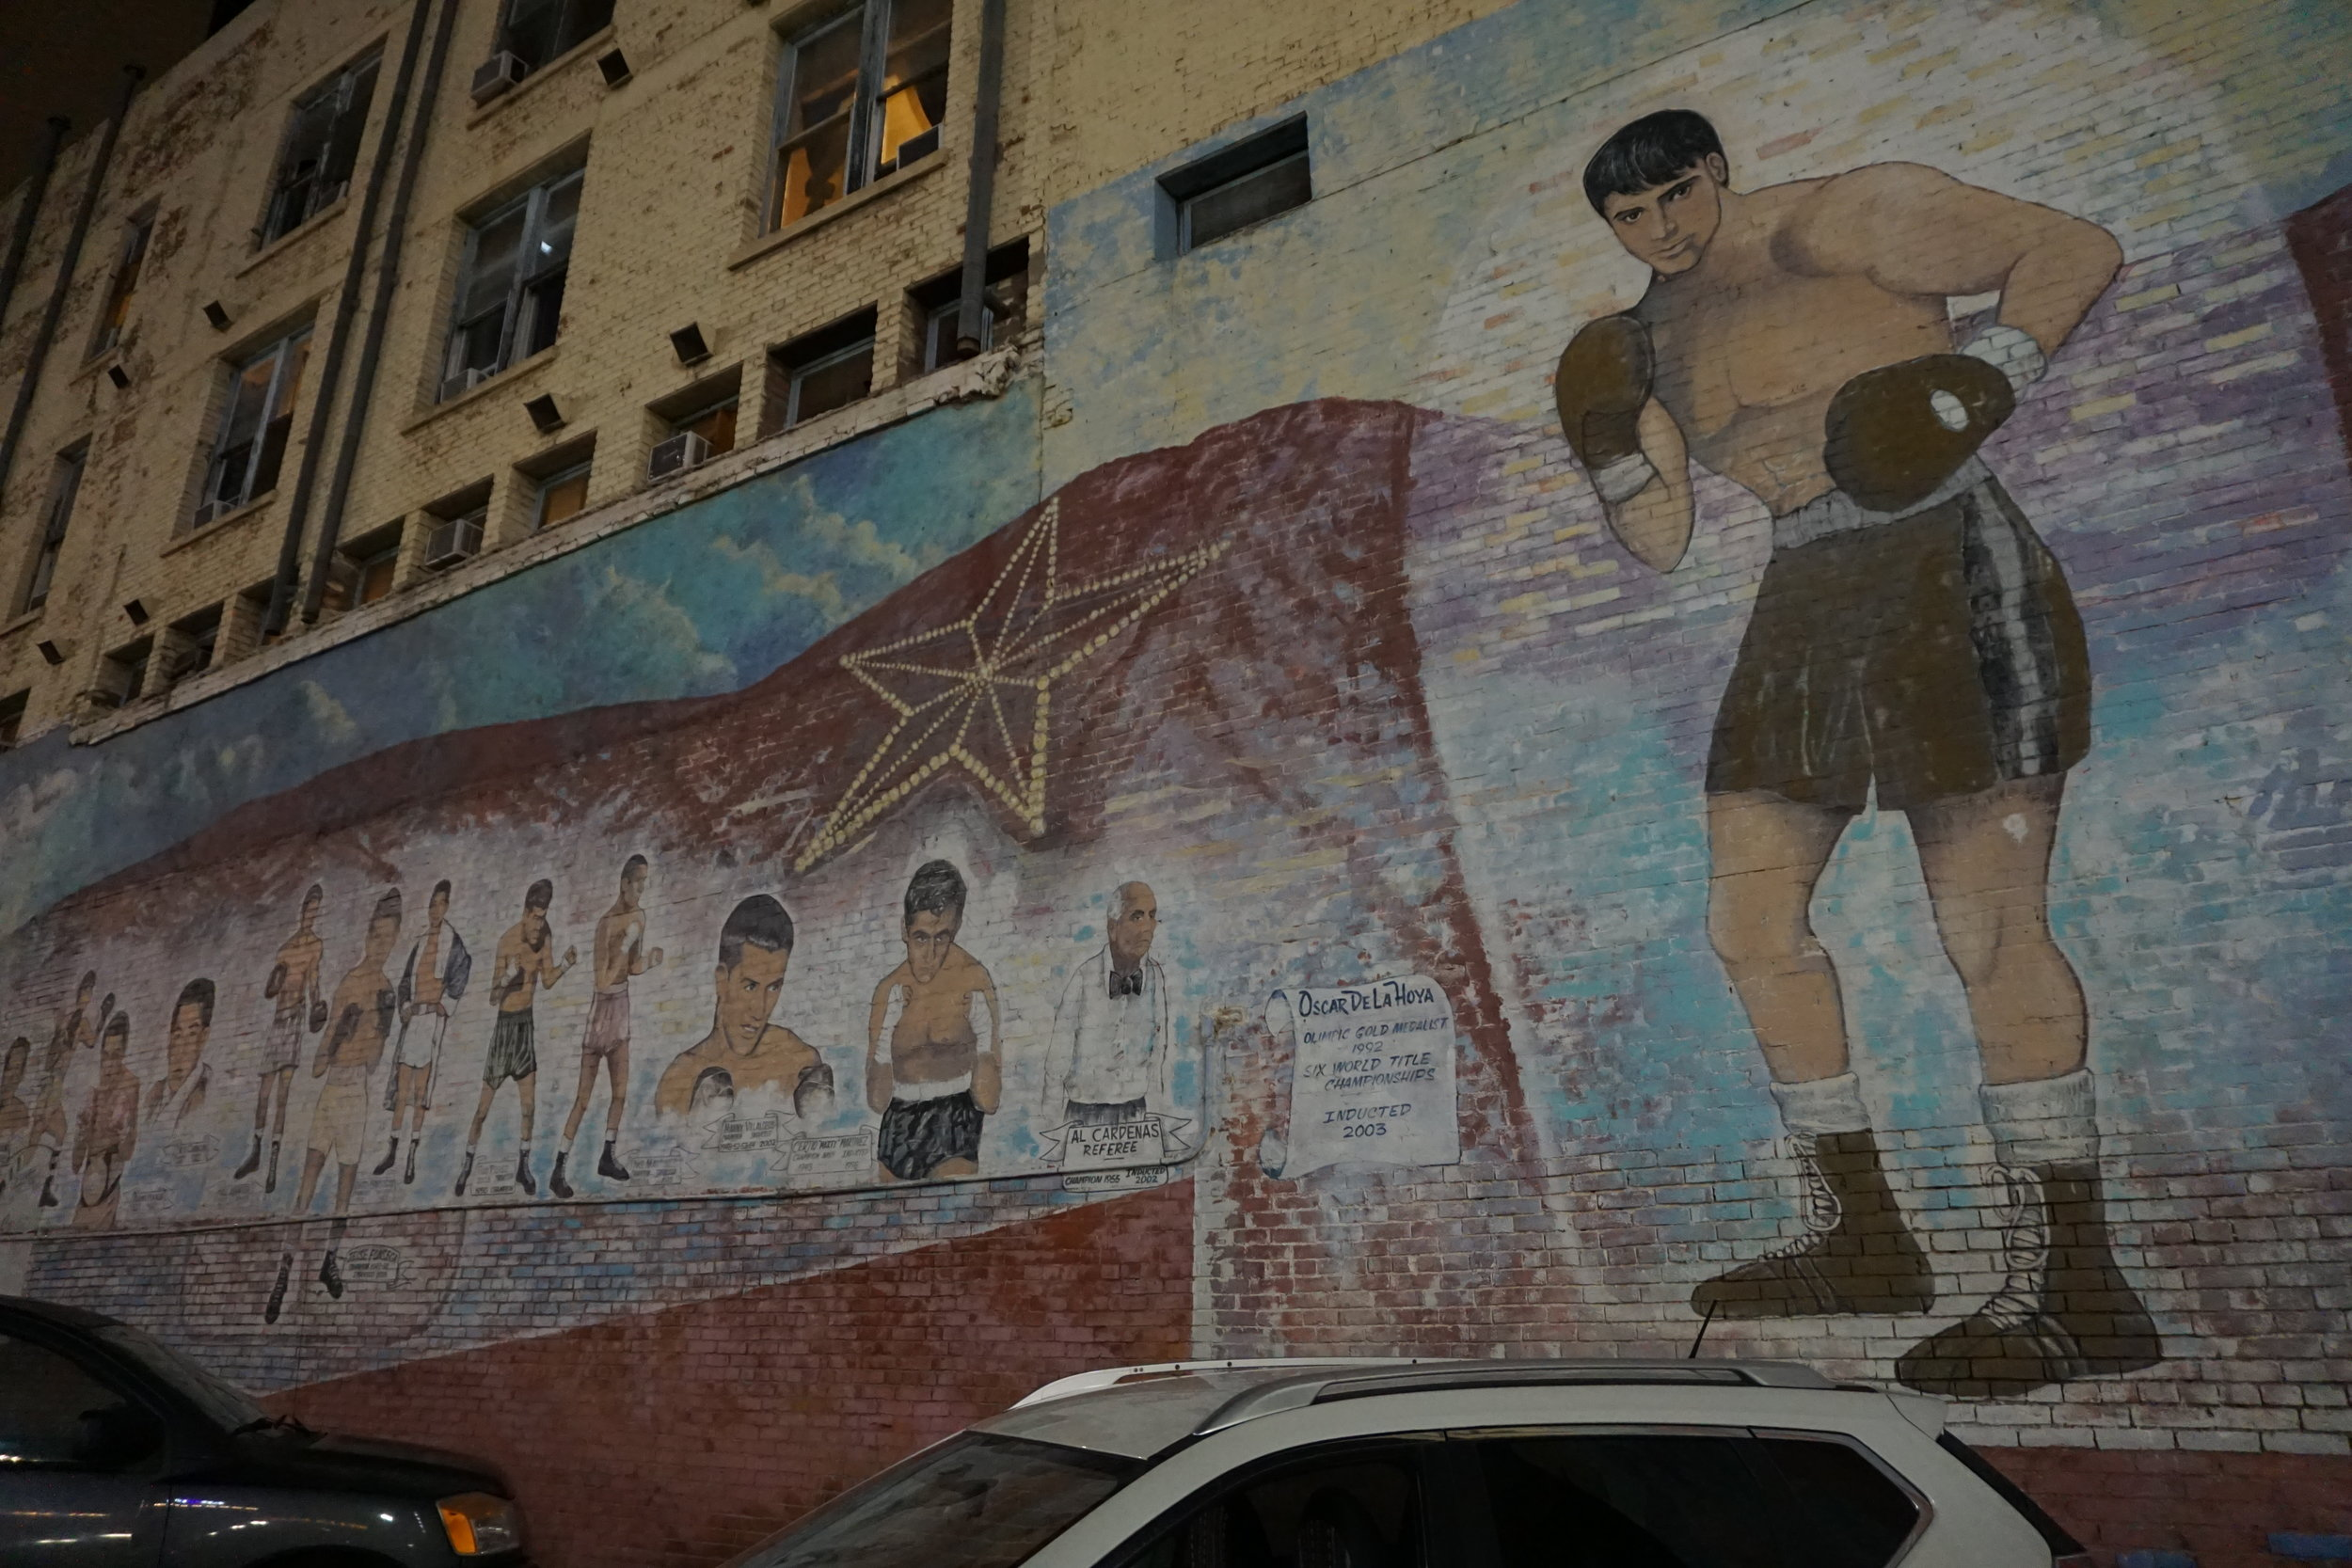 Boxing Hall of Fame art mural El Paso Texas